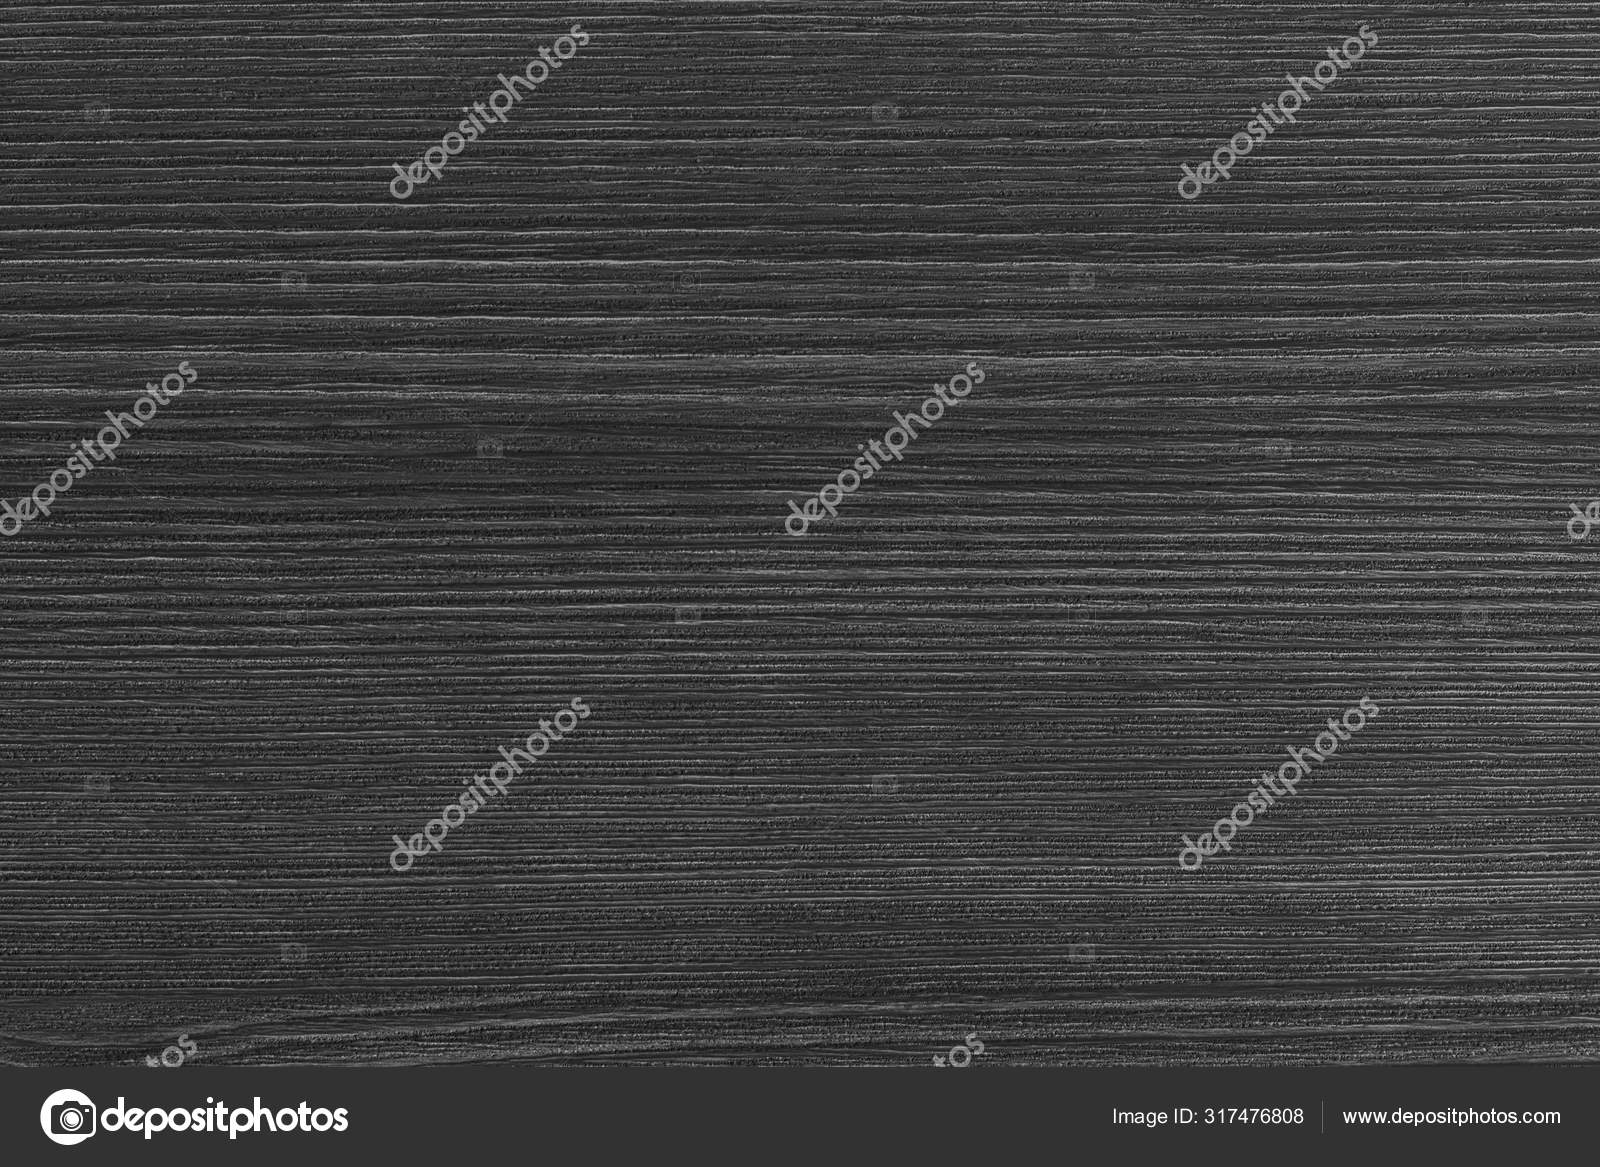 https fr depositphotos com 317476808 stock photo dark gray wooden panel or html